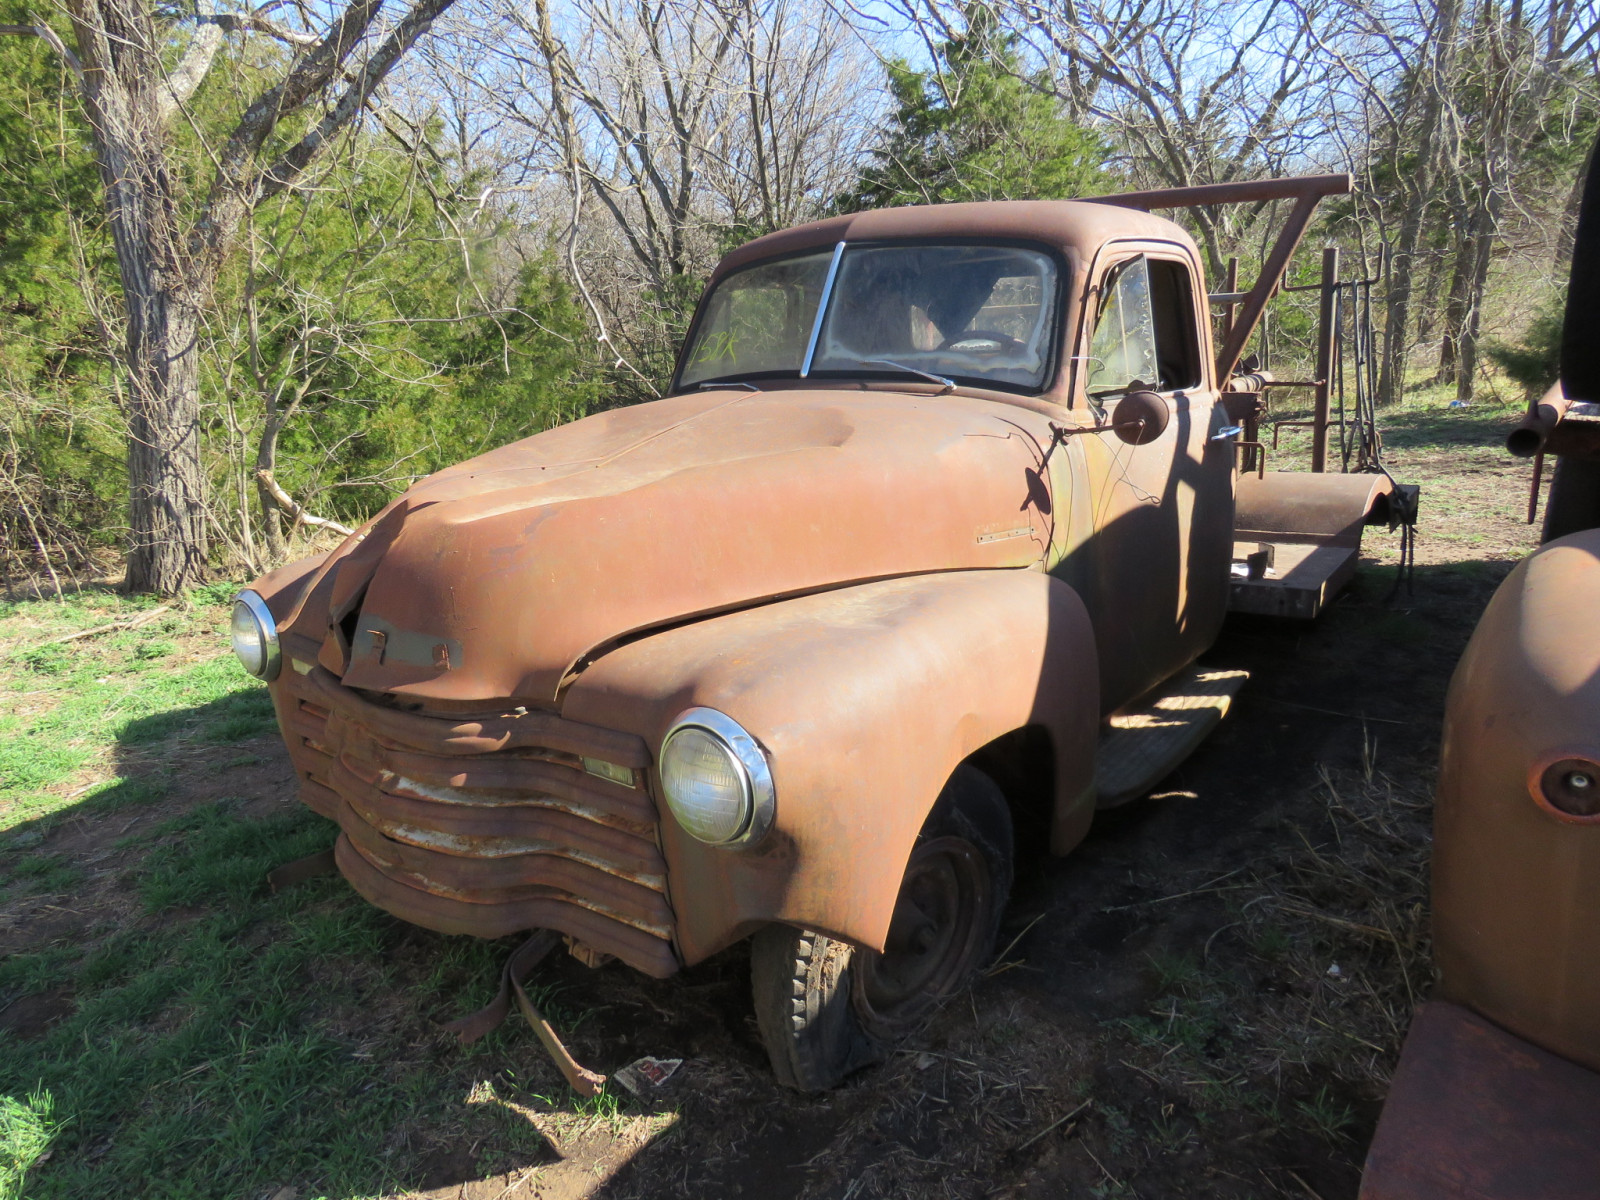 Chevrolet Truck for project or parts - Image 2